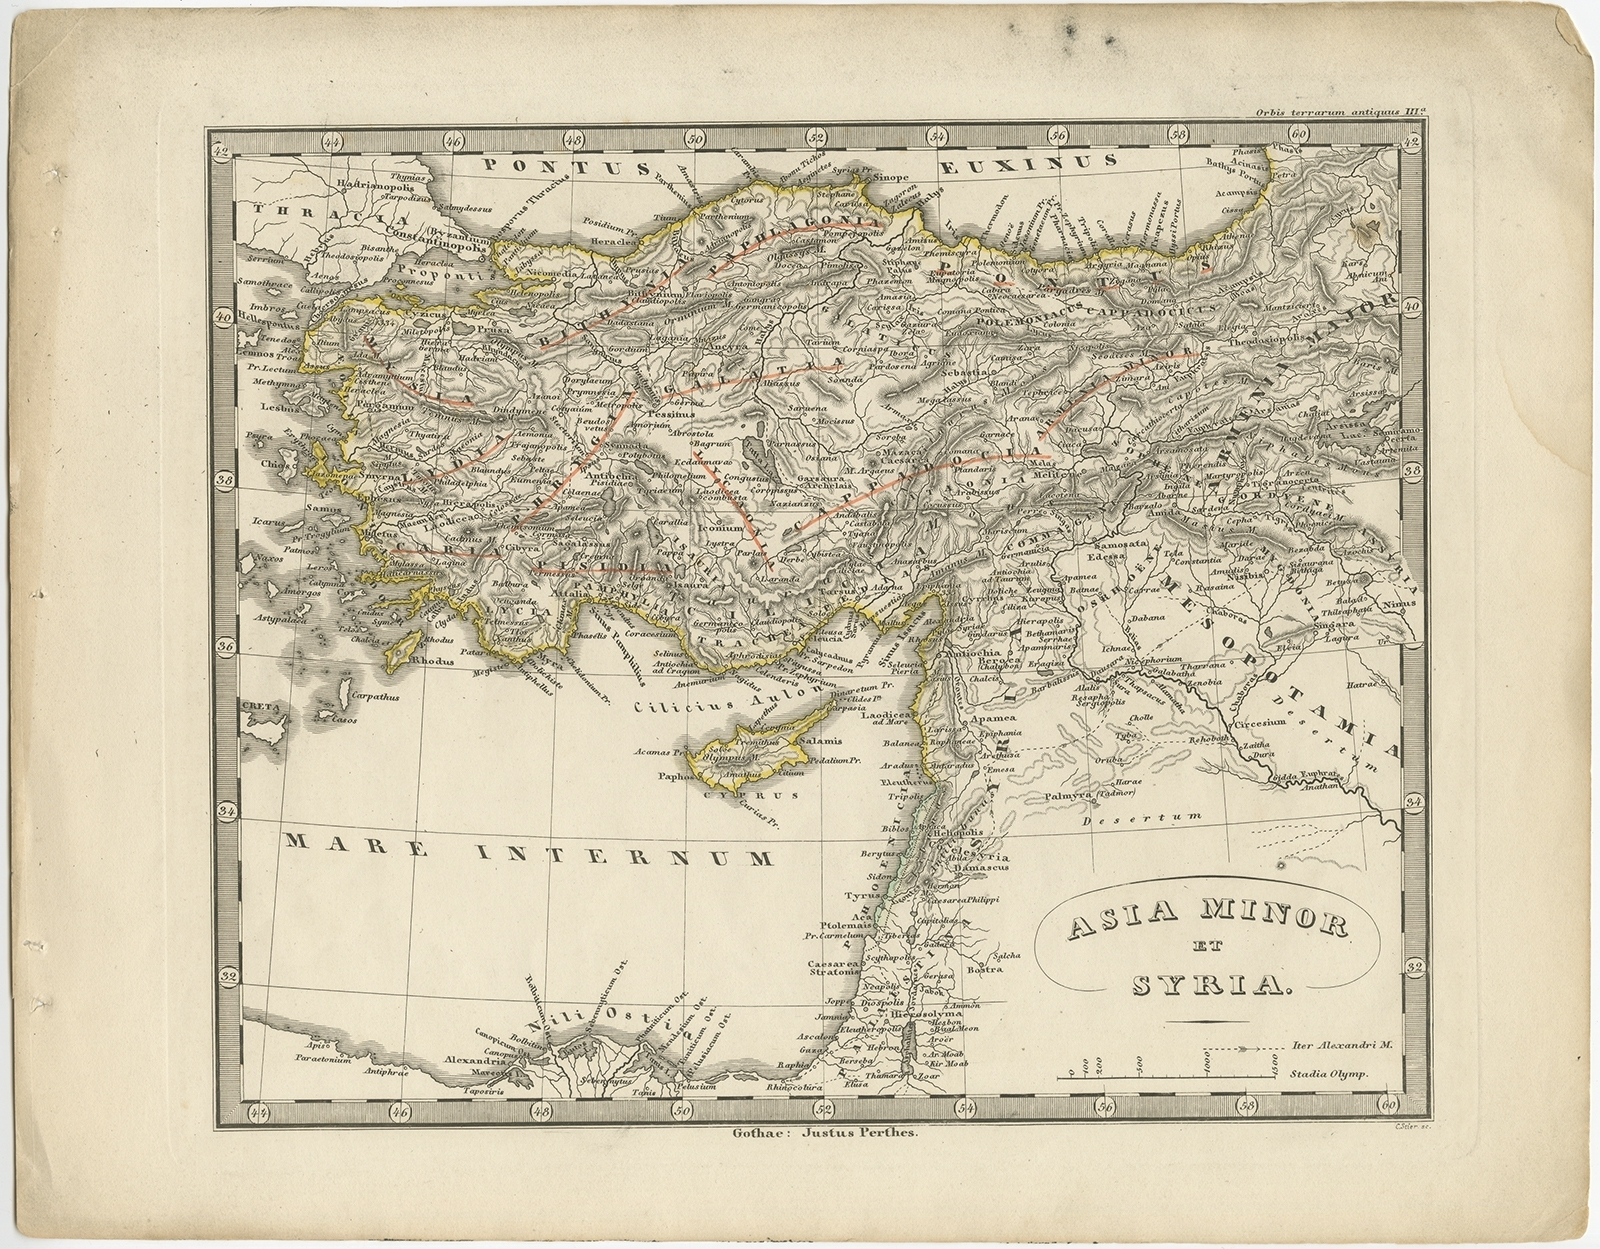 Map Of Asia Minor 60 Ad.Antique Map Of Asia Minor And Syria By Perthes 1848